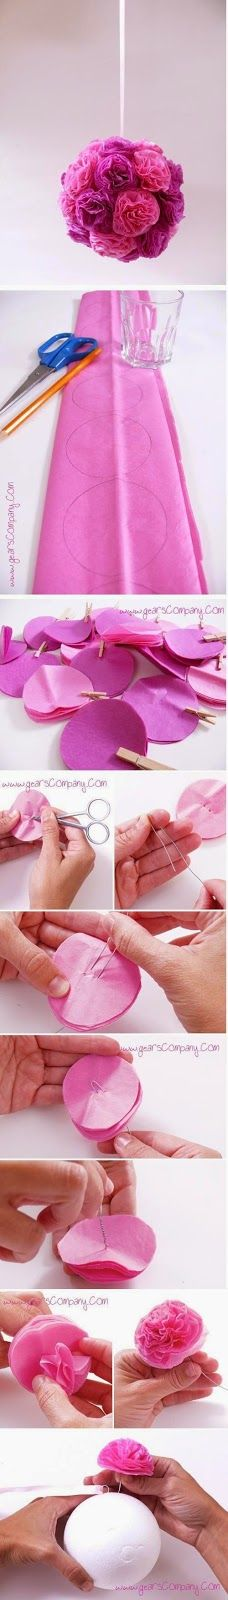 floral flower pom hanging decor DIY from tranquility du jour blog by Bead and Cord